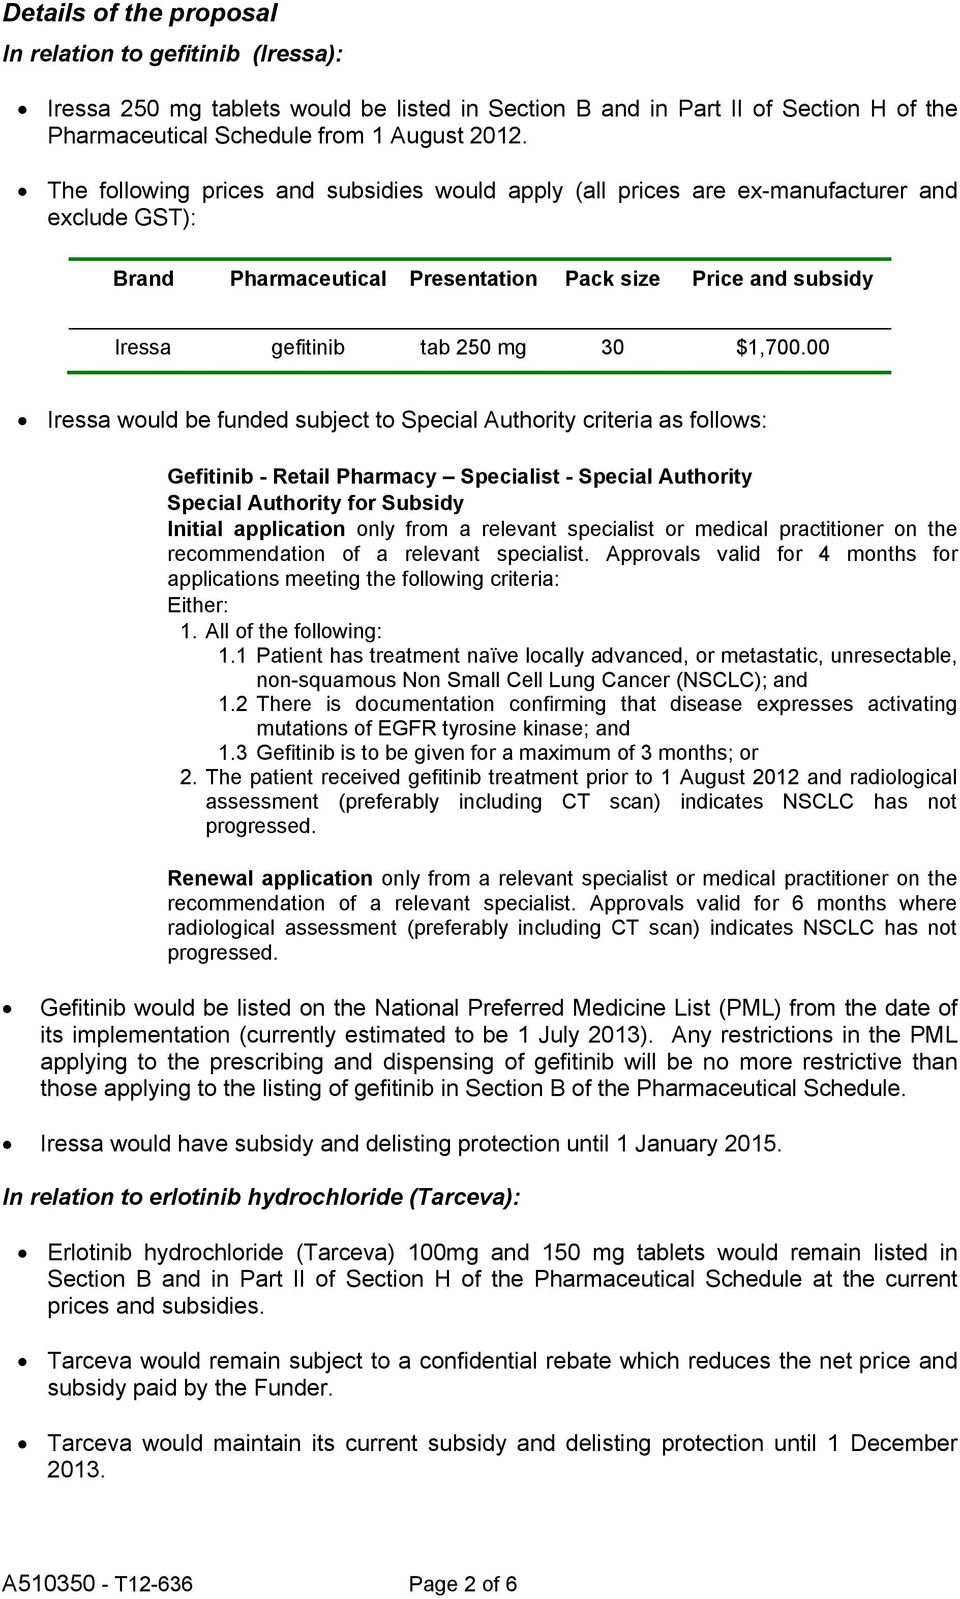 00 Iressa would be funded subject to Special Authority criteria as follows: Gefitinib - Retail Pharmacy Specialist - Special Authority Special Authority for Subsidy Initial application only from a